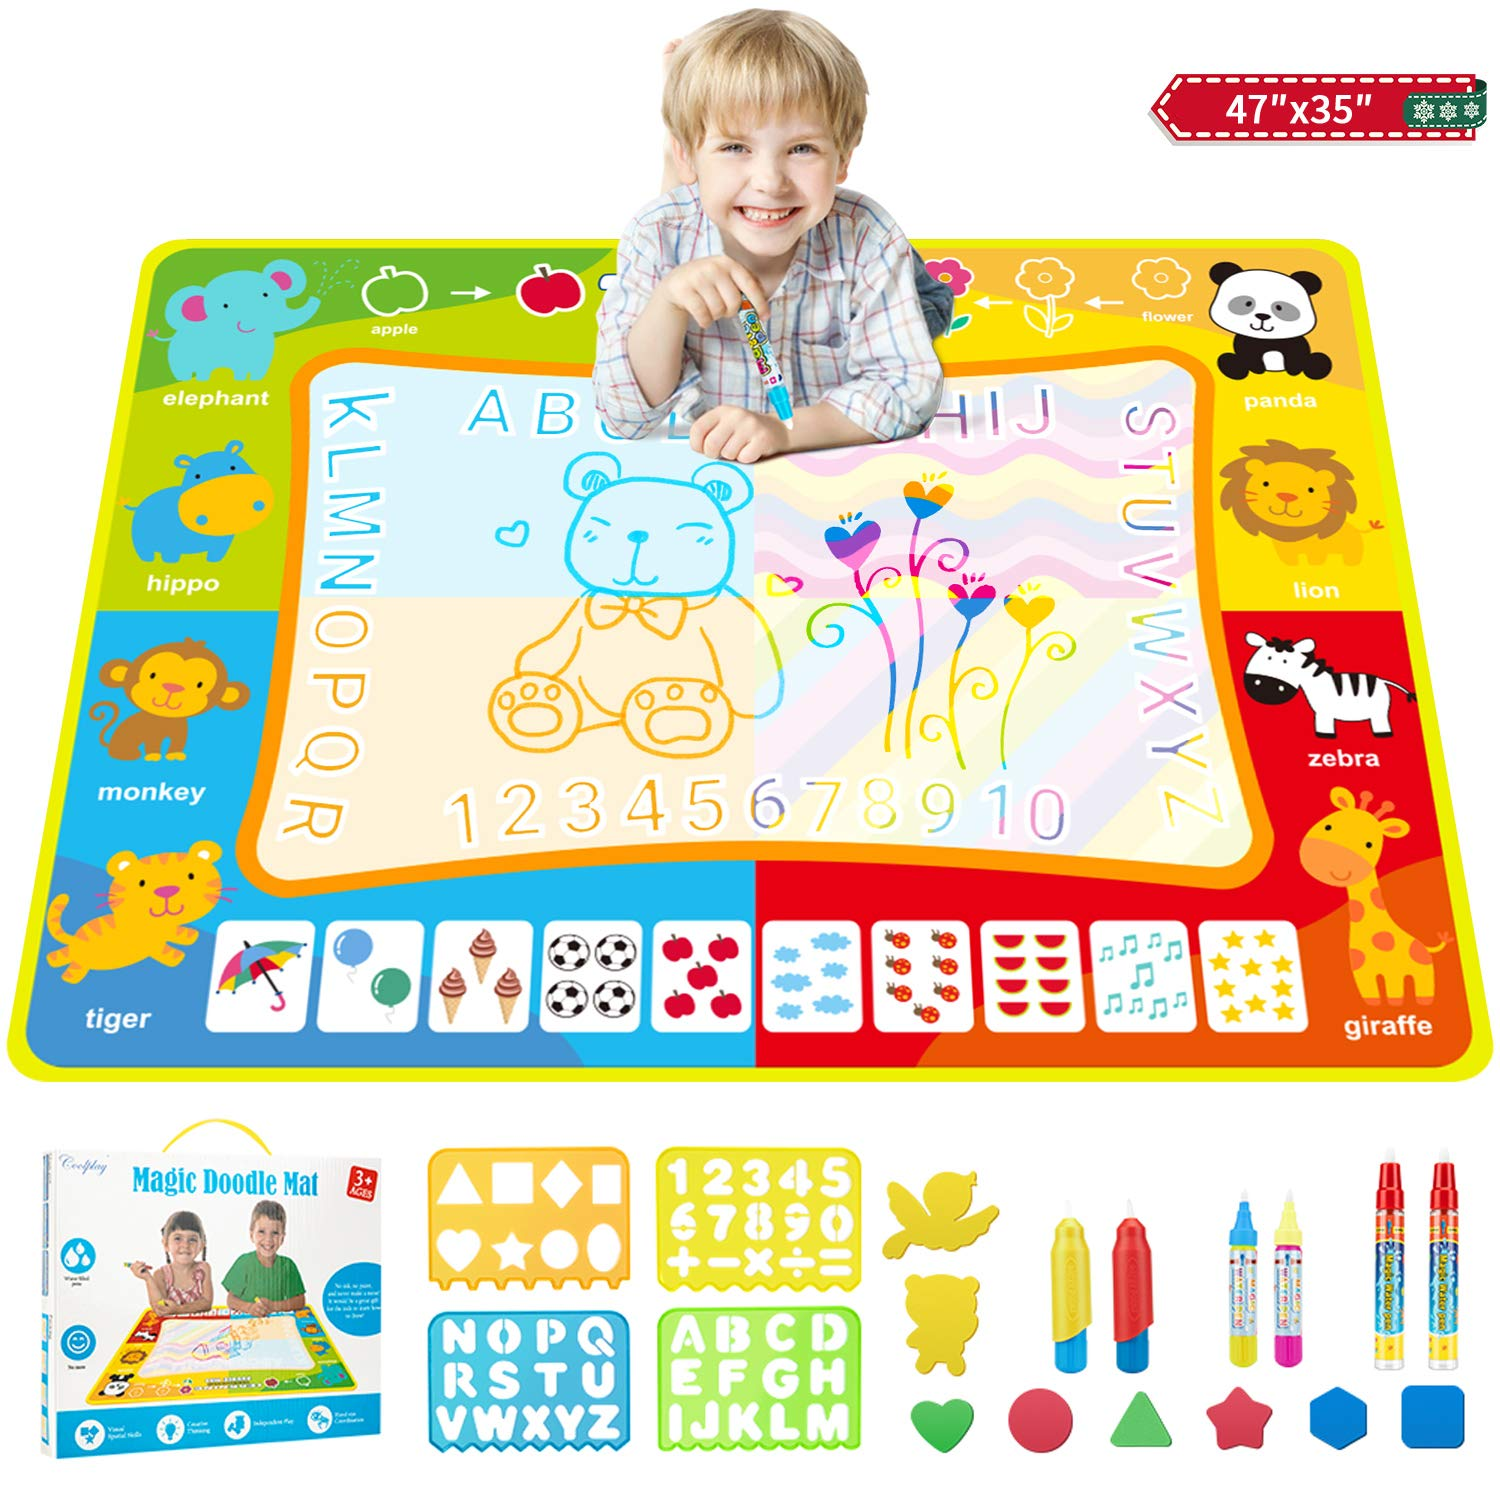 Water Drawing Mat, 47 × 35 Inches Extra Large Aqua Magic Doodle Mat, Kid's Drawing Writing Board, Colorful Educational Toys for 2 3 4 5 6 7 8 9 10 Year Old Girls Boys (Animal)